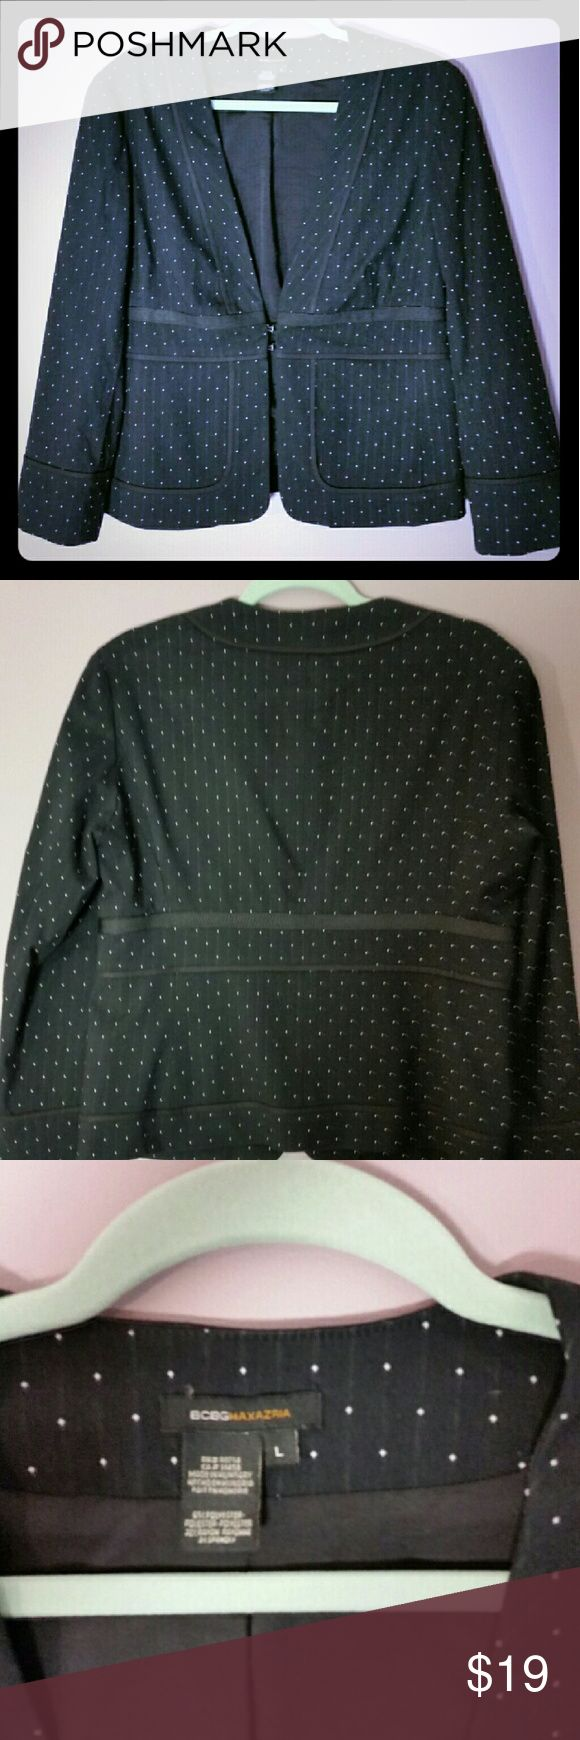 BCBG polka dot blazer BCBG polka dot blazer. Good used condition. Flattering waist narrowing design. Cute for the office or fun with jeans. BCBGMaxAzria Jackets & Coats Blazers